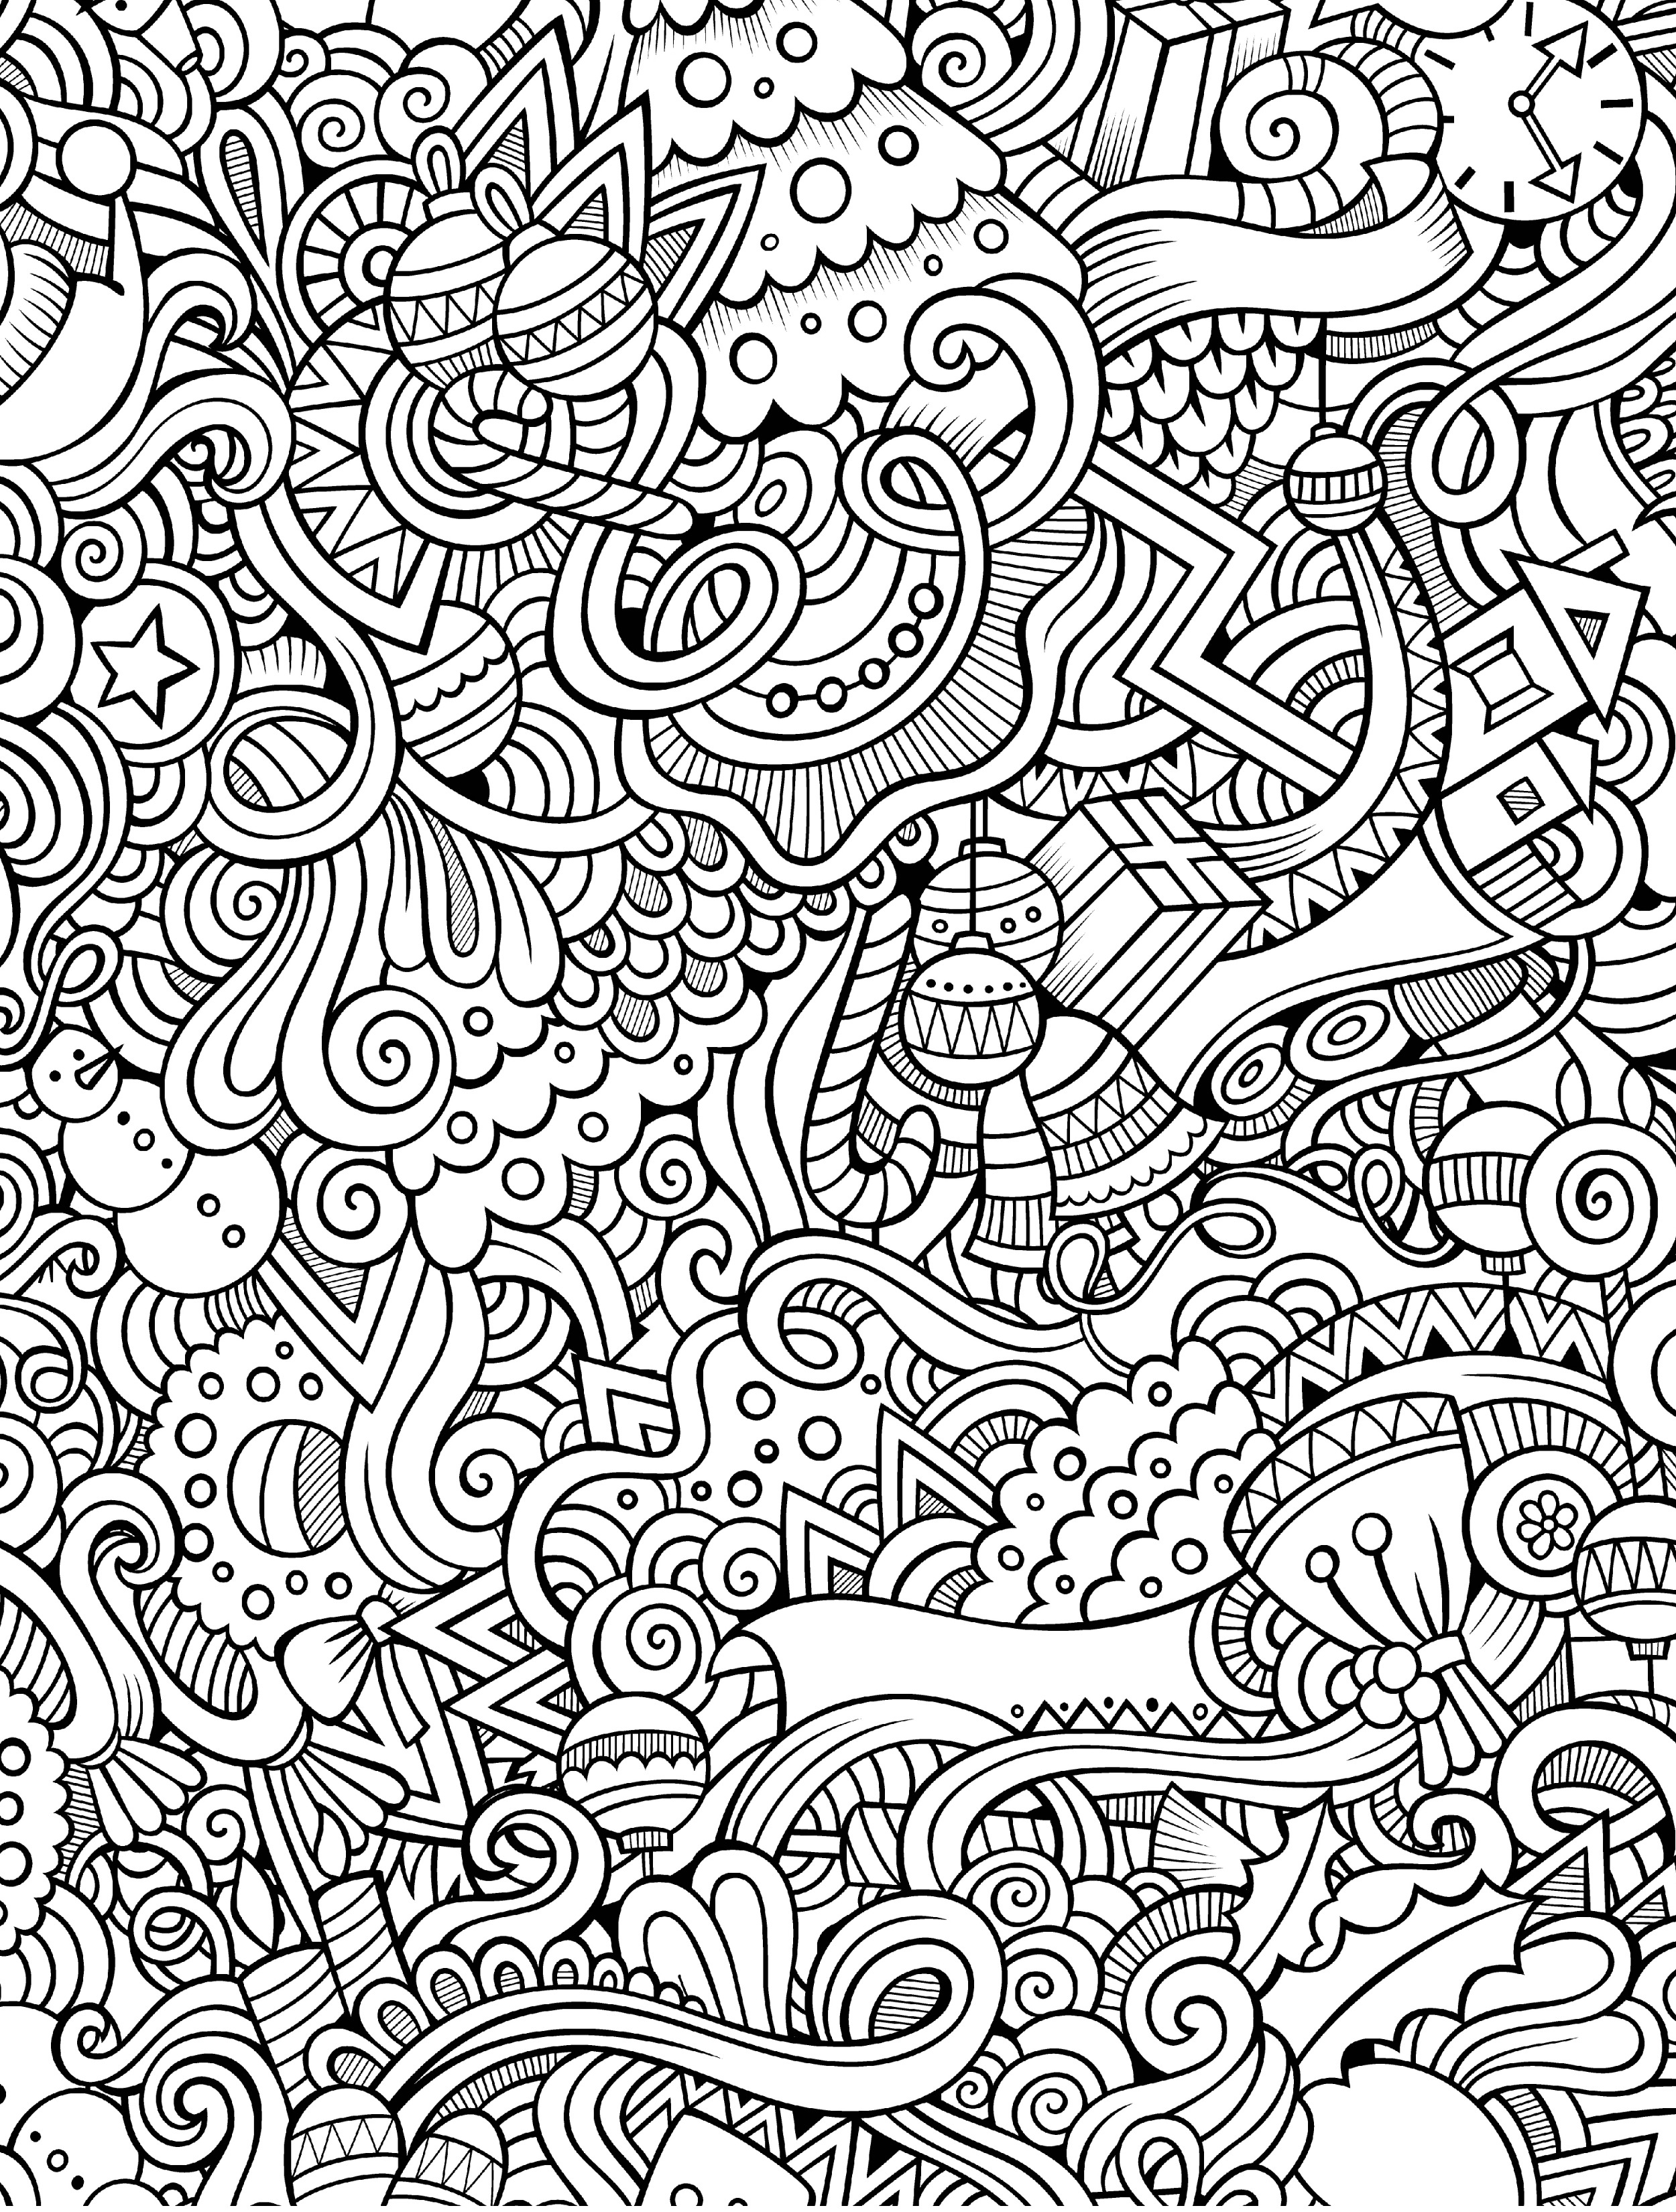 10 Free Printable Holiday Adult Coloring Pages - Free Coloring Pages Com Printable